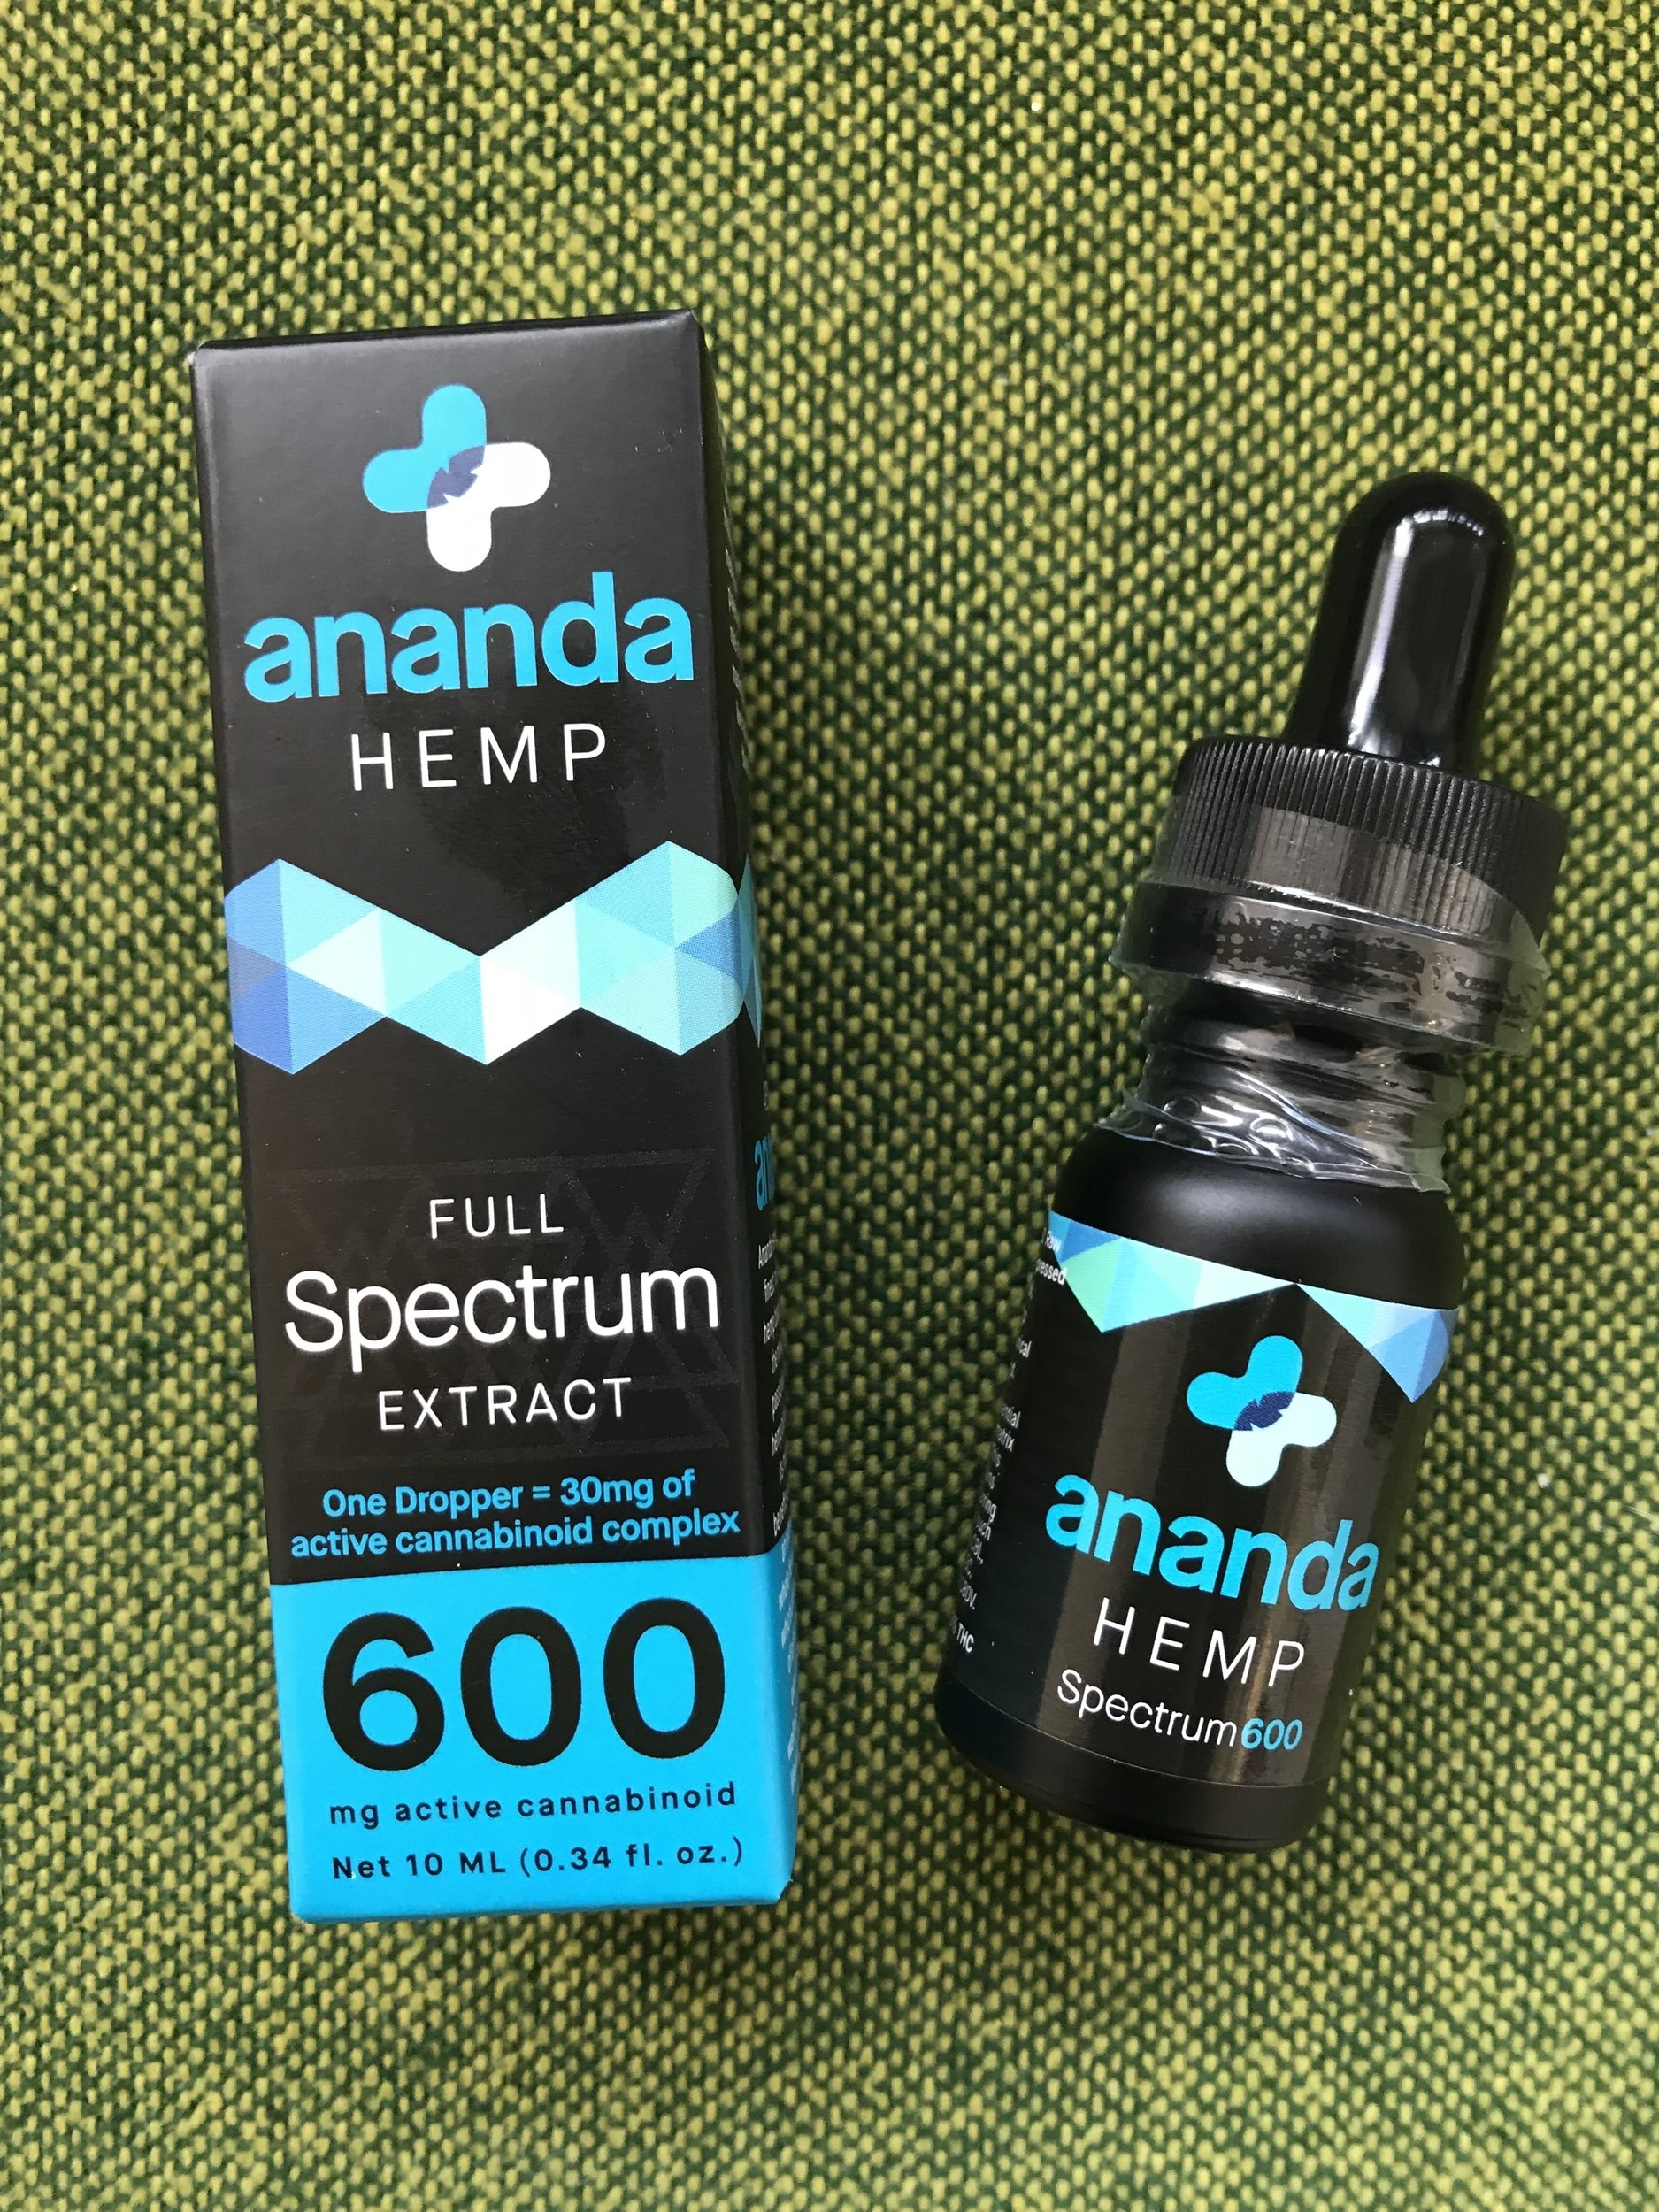 AnandaFull Spectrum600mg - $95.00